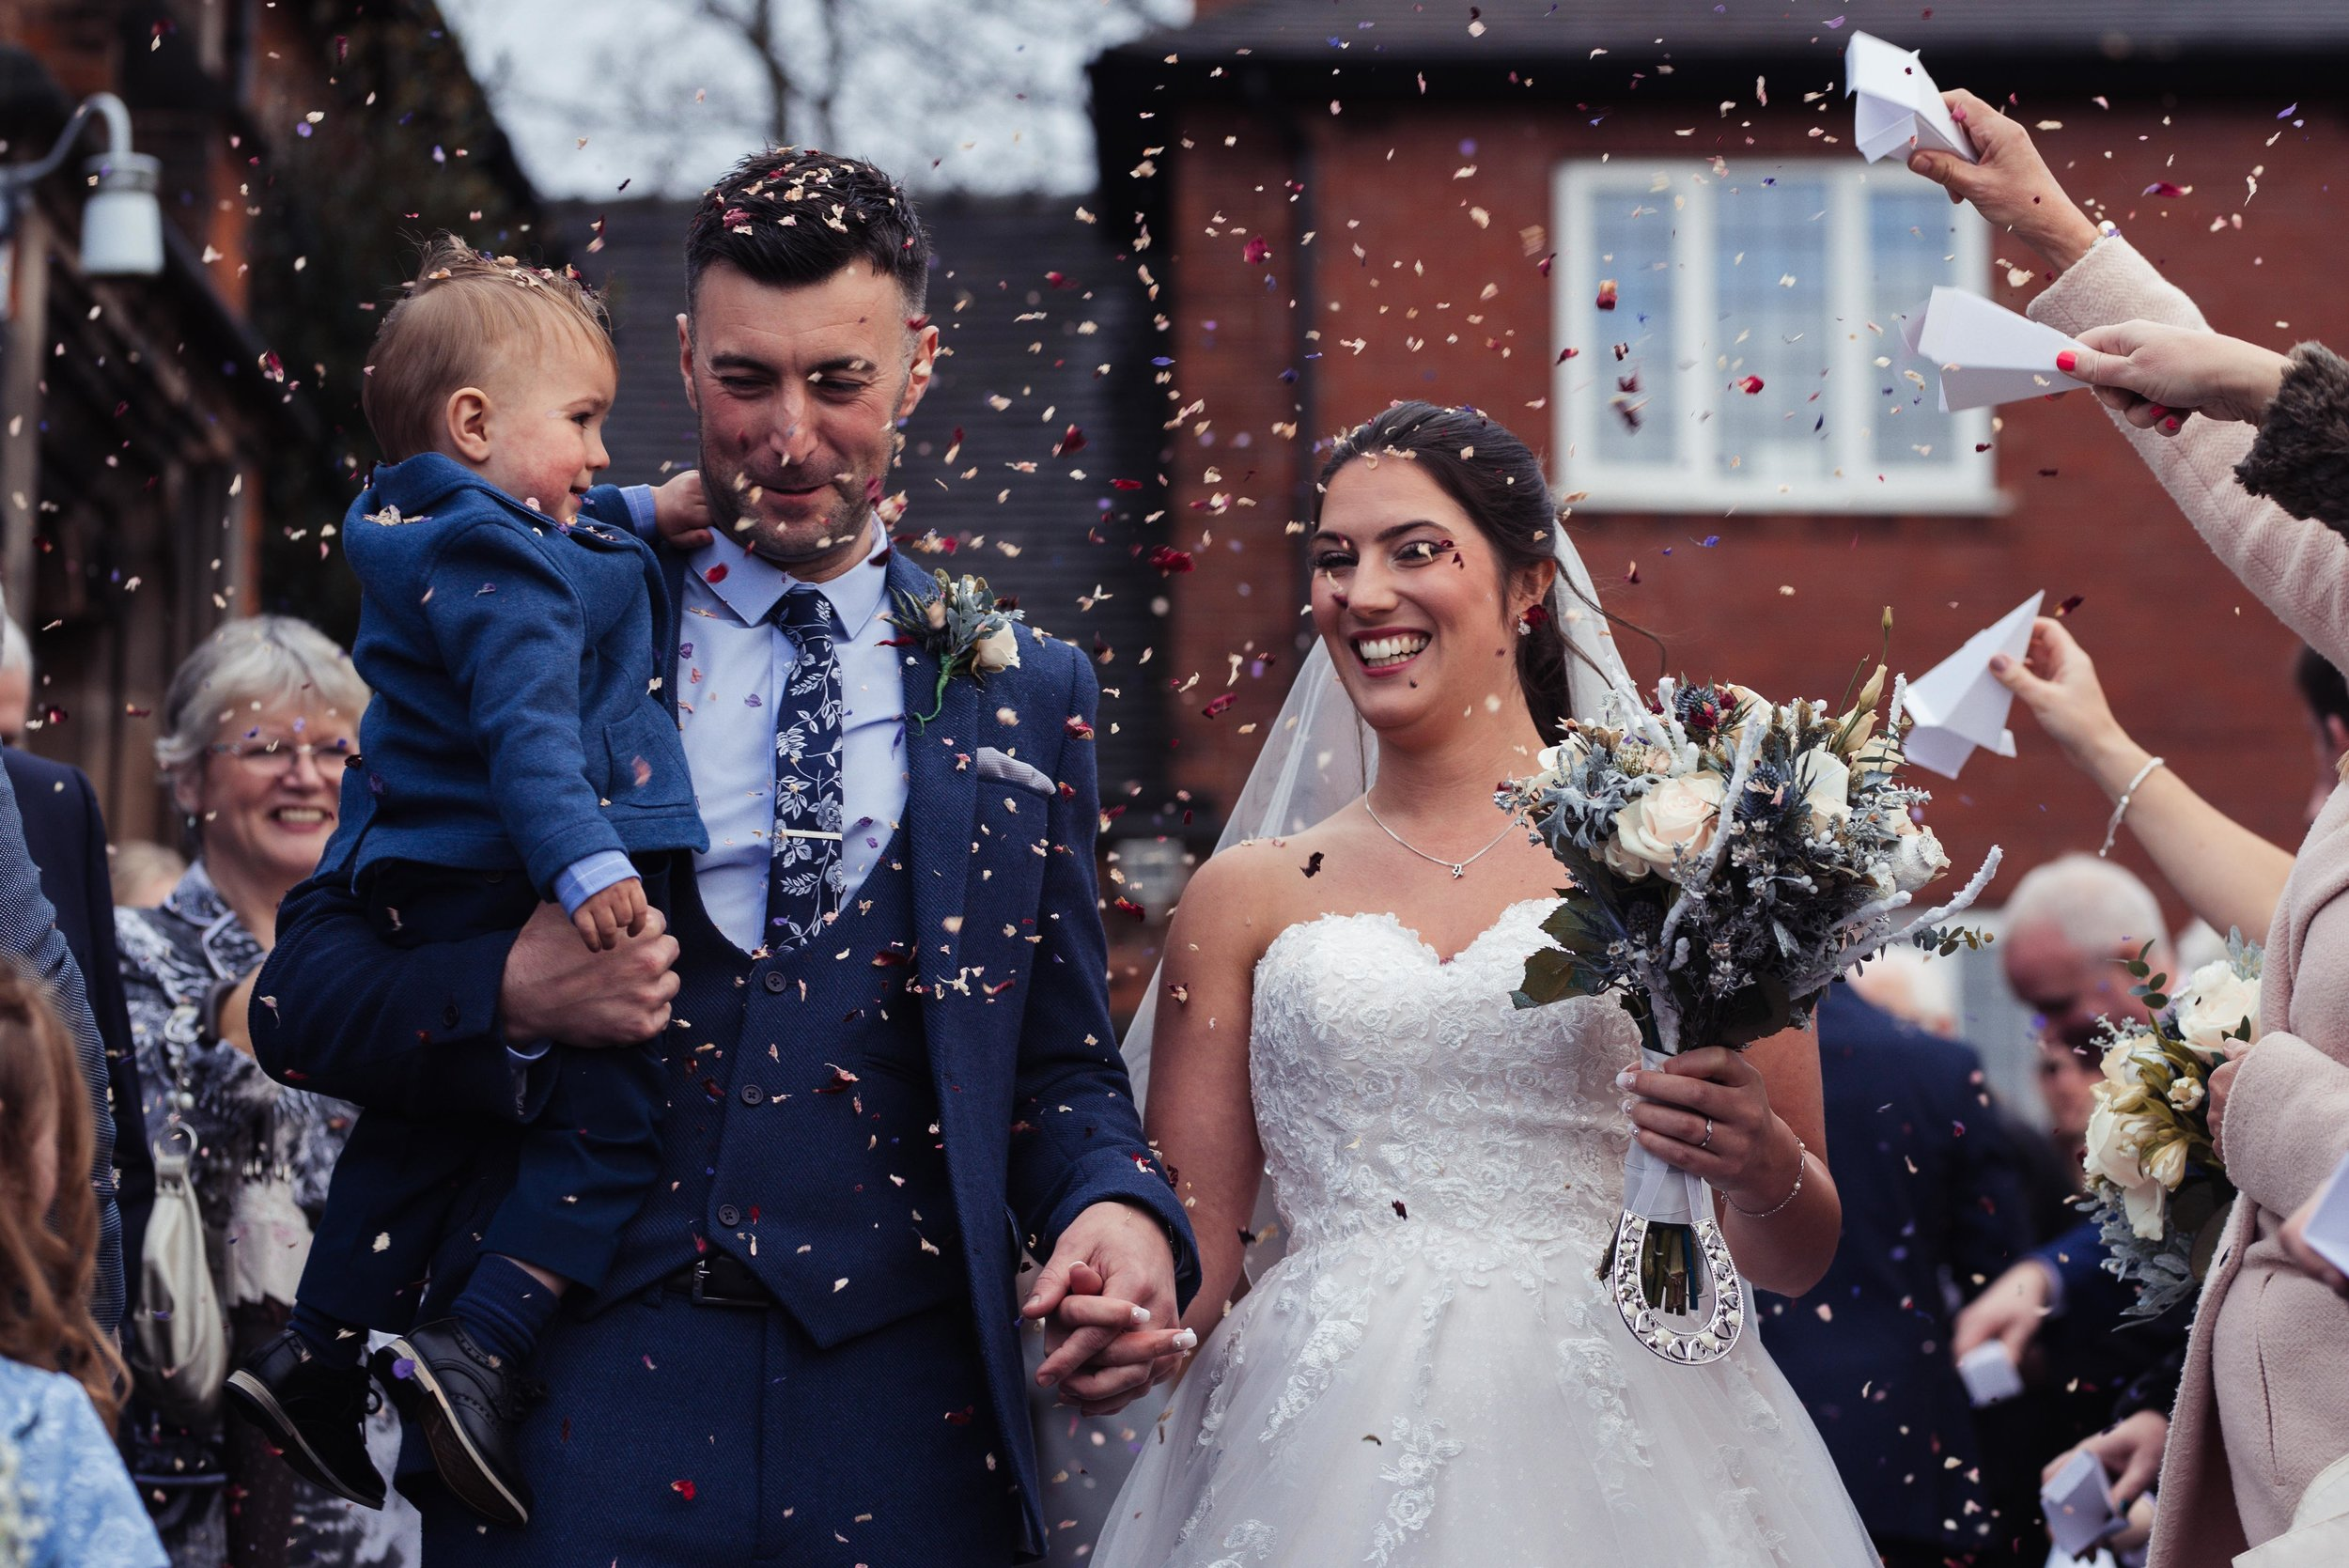 The bride and groom with their son walking through a cloud of confetti